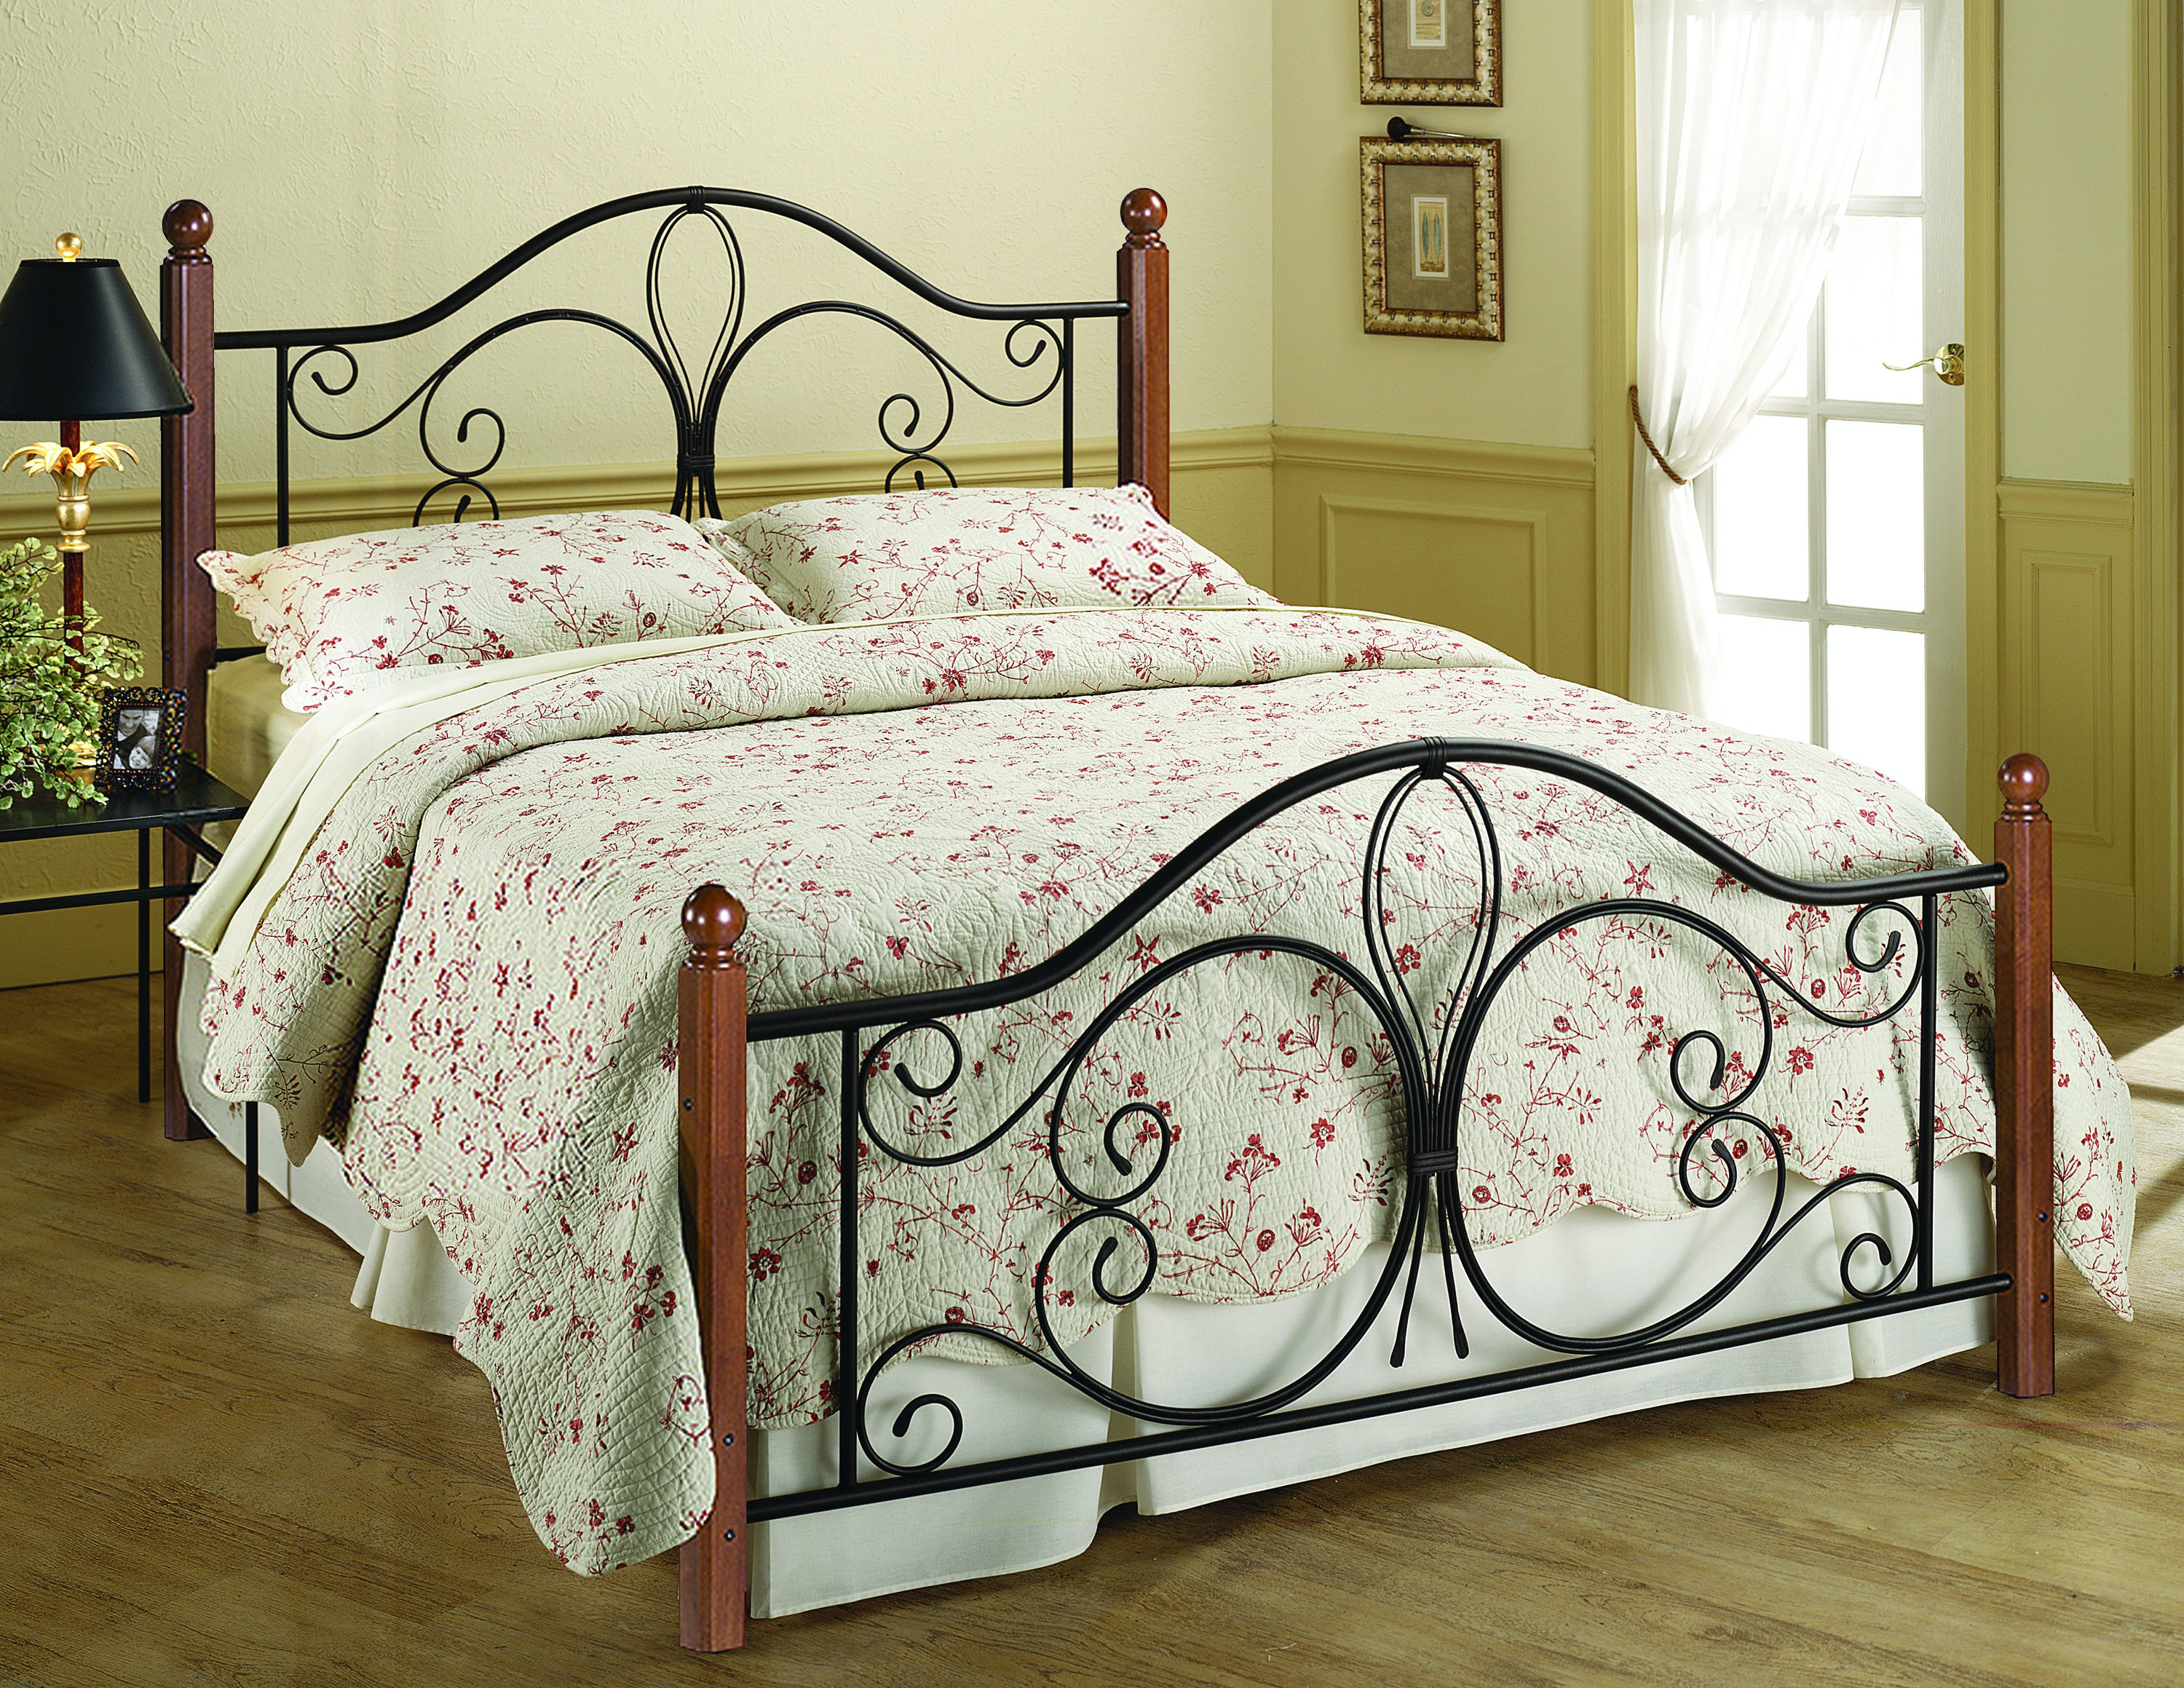 King Bed With Posts Hillsdale Furniture Bedroom Milwaukee Wood Post Bed King Bed